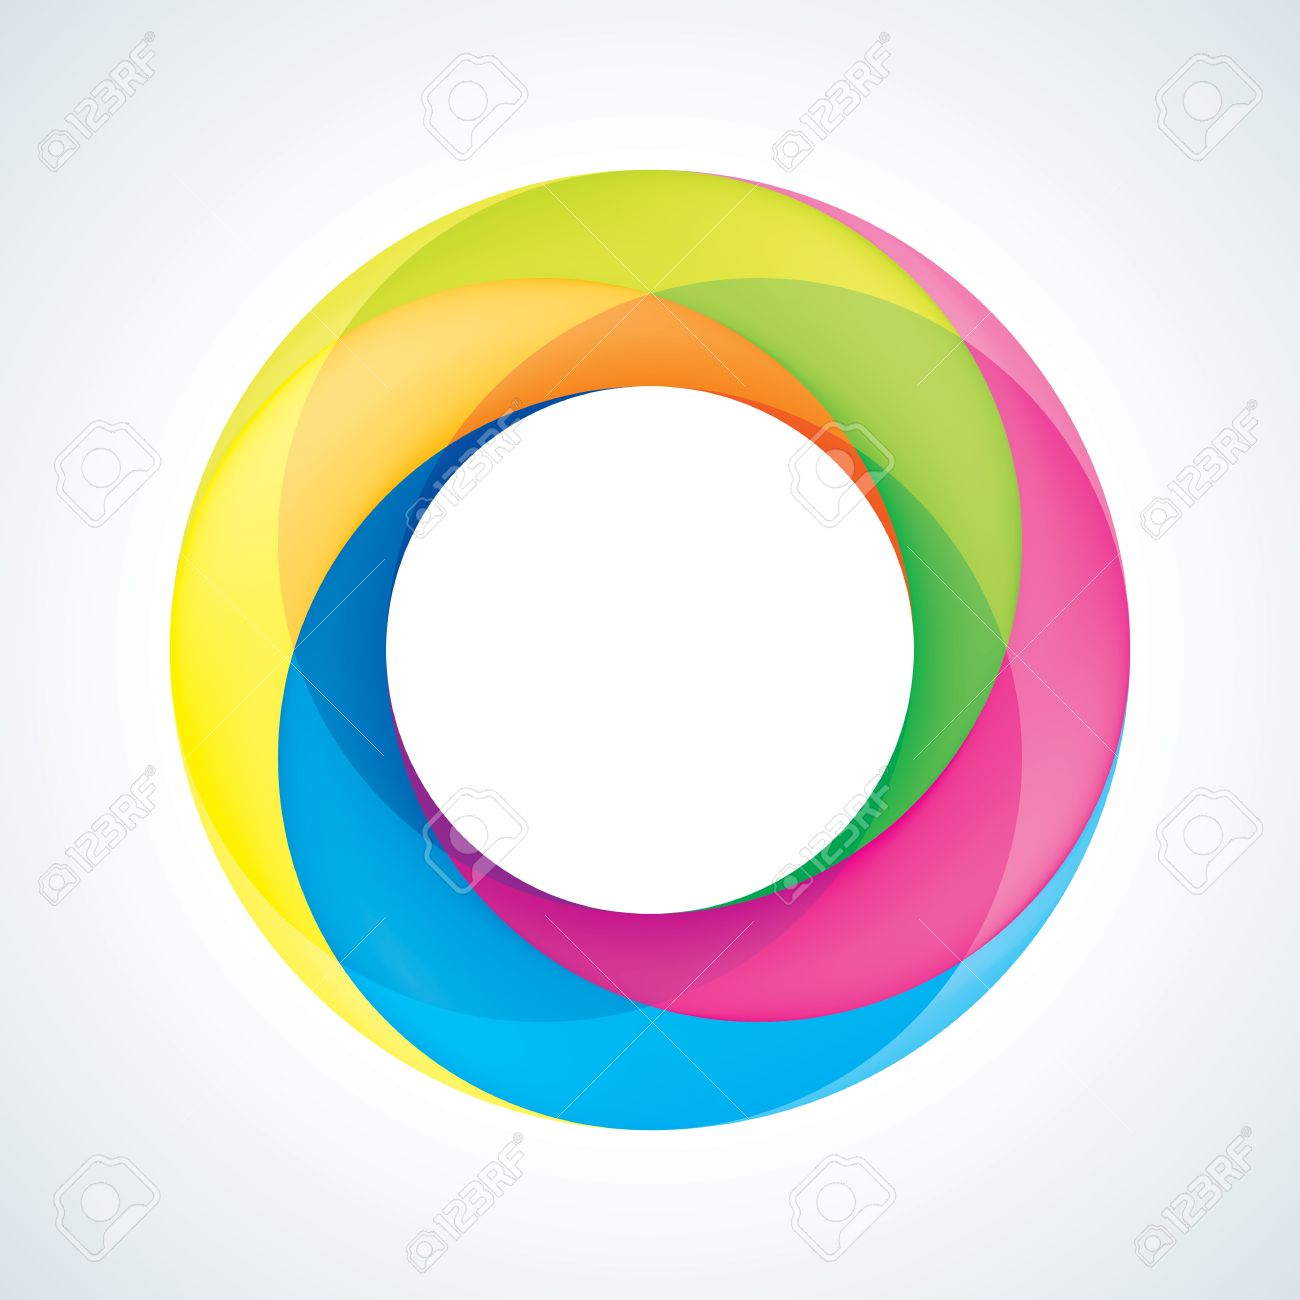 abstact infinite circle logo template corporate icon royalty free